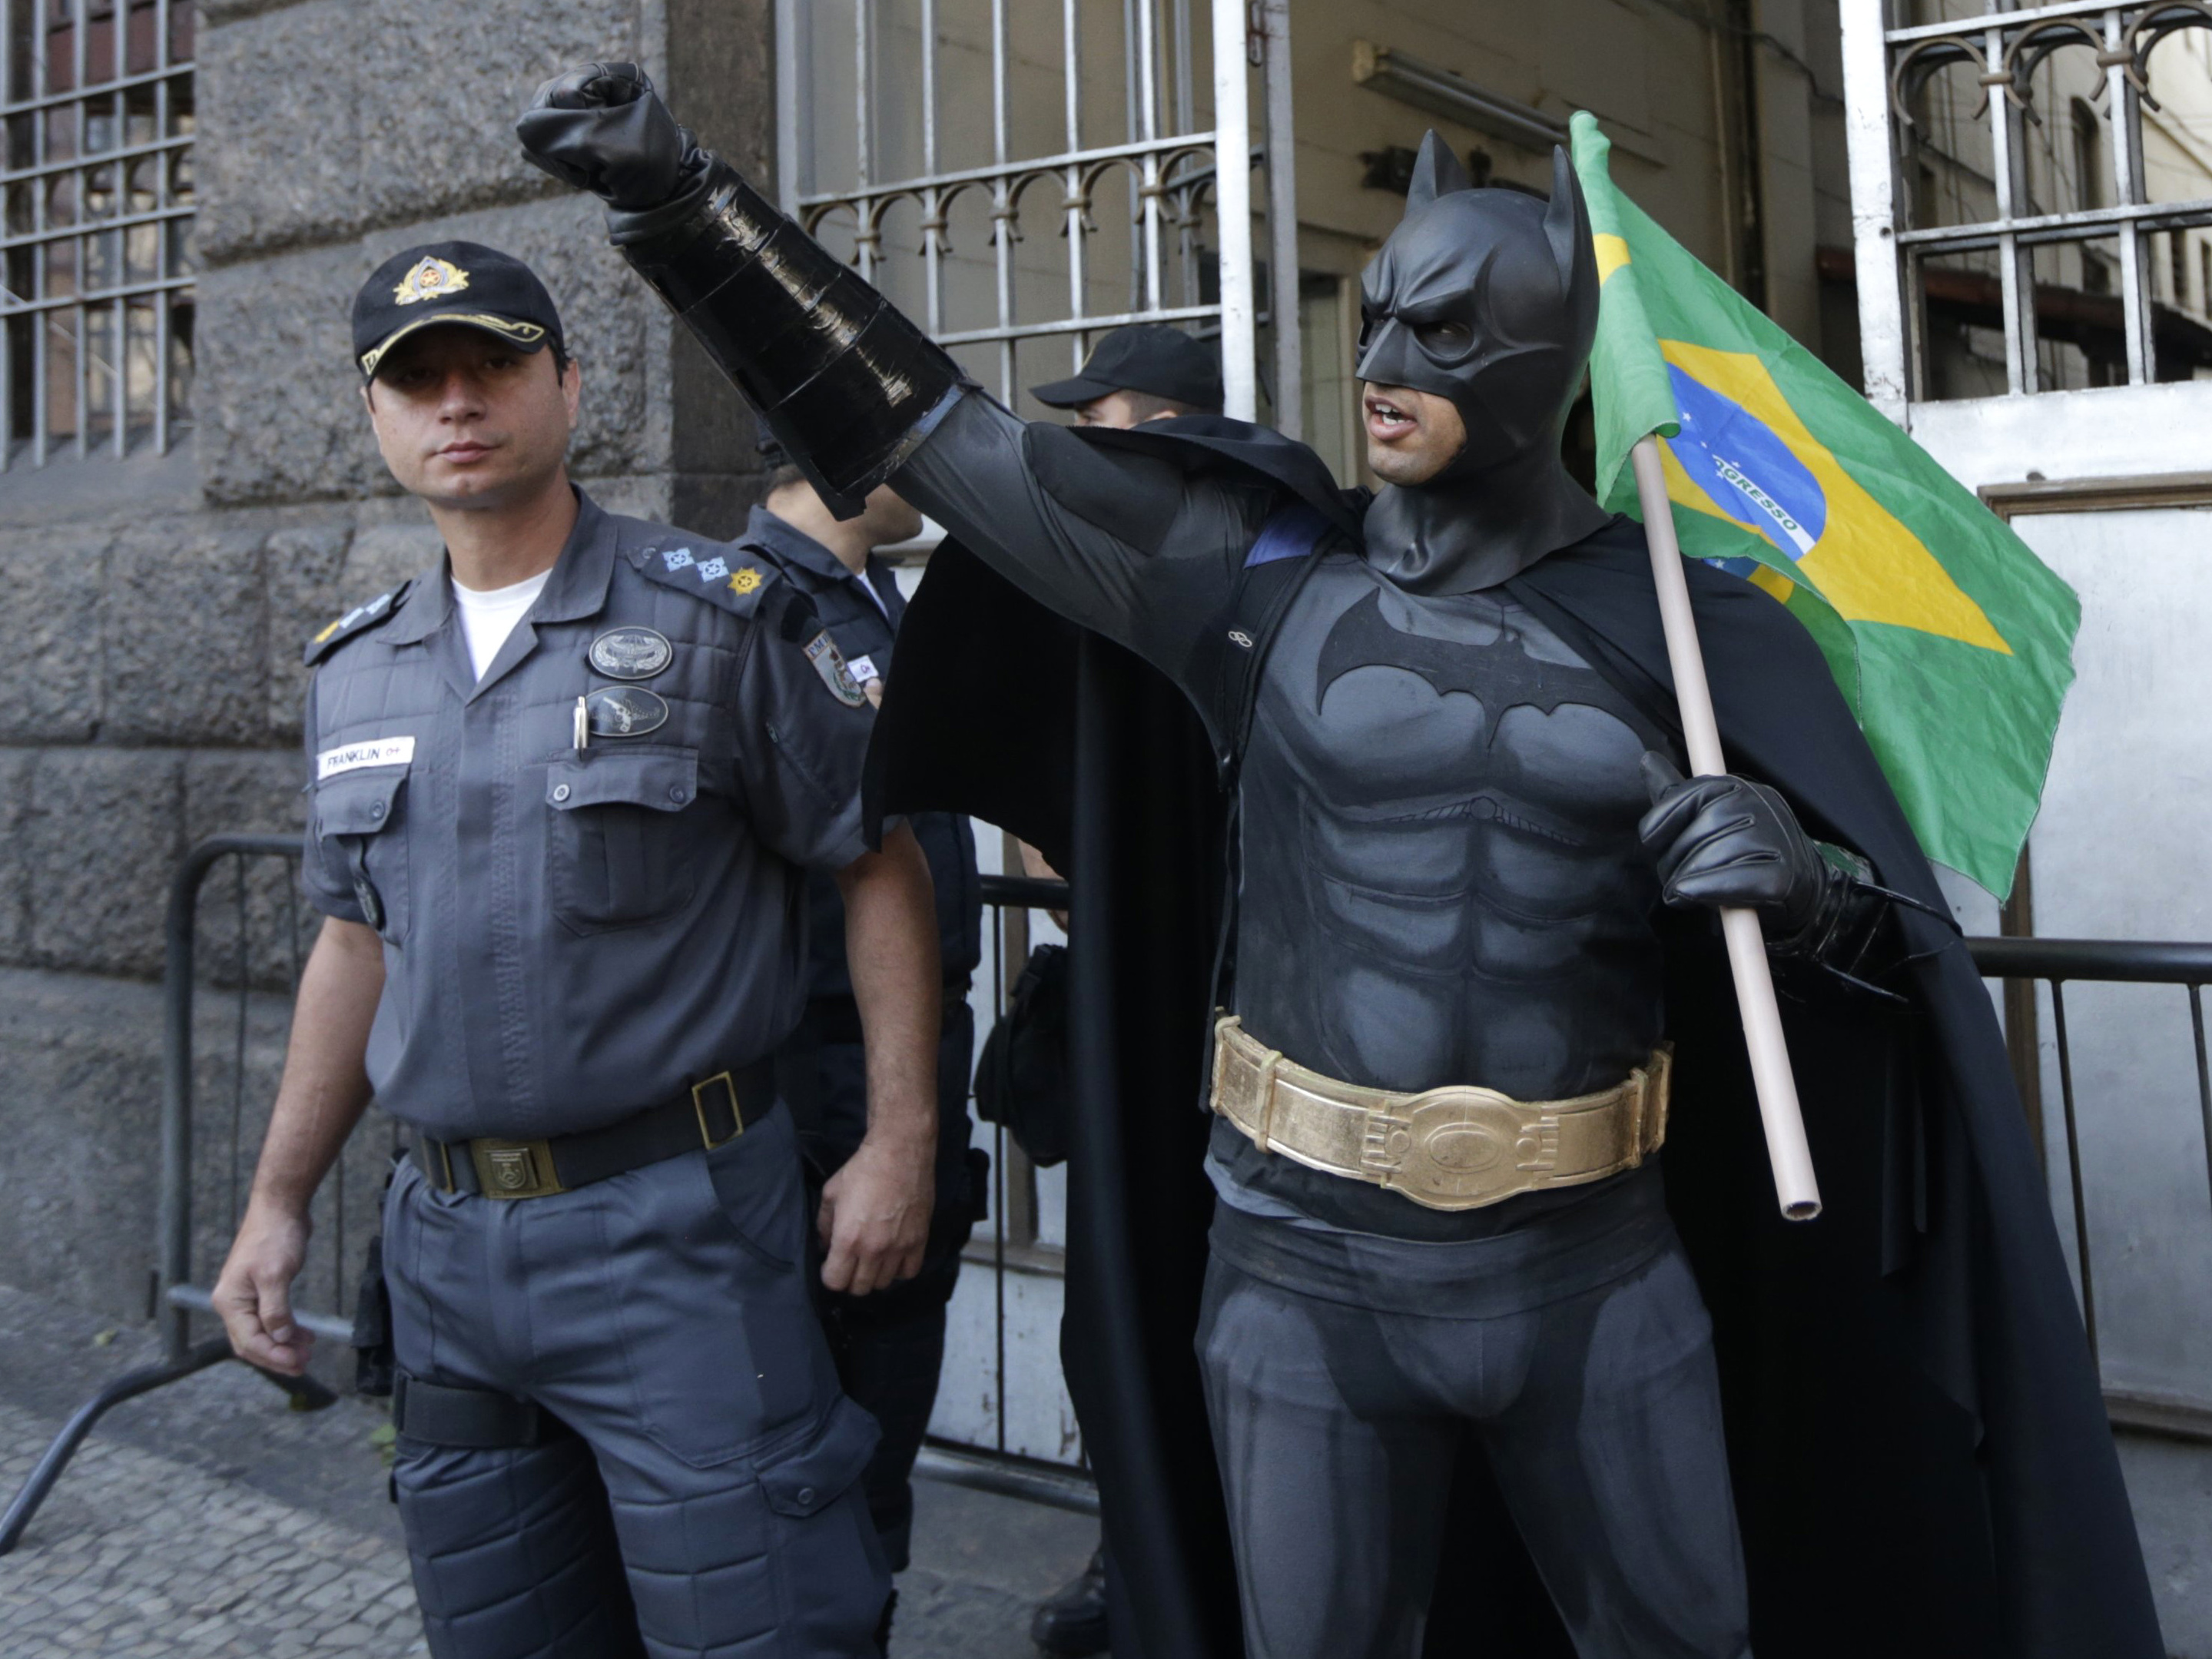 Holy Smokes Batman Youre Protesting In Brazil NCPR News - Brazil's tallahassee